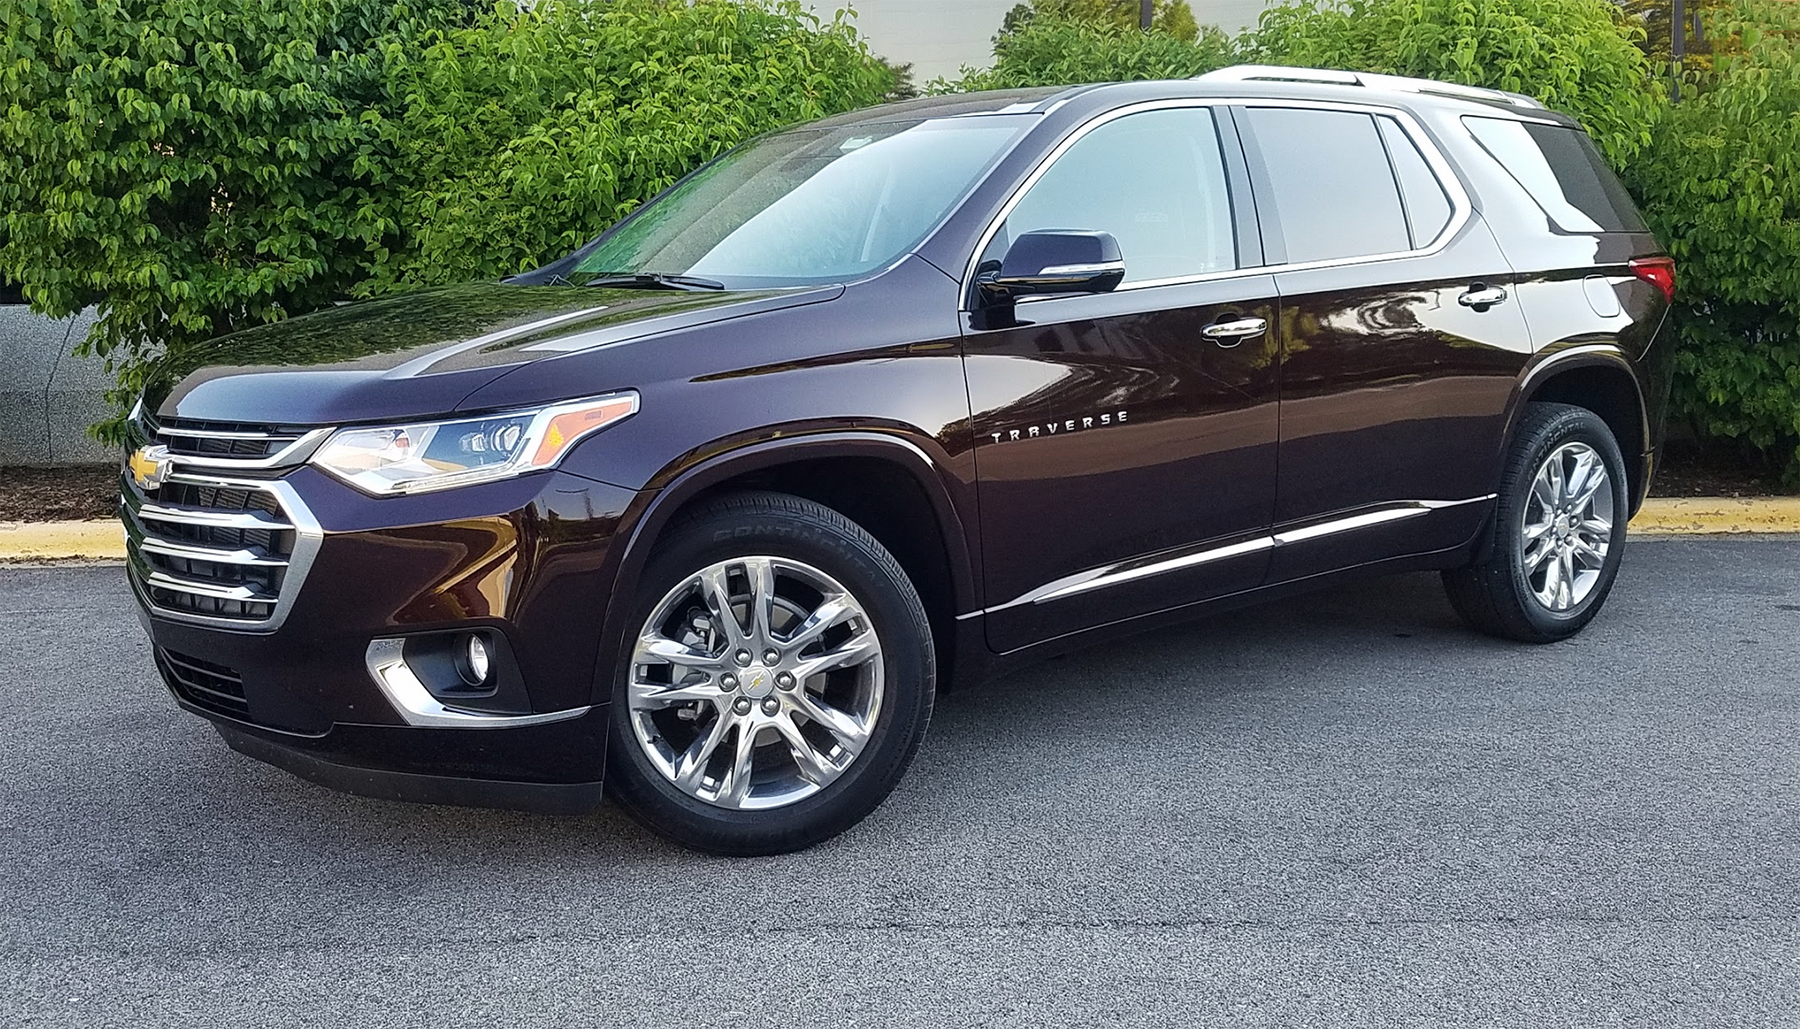 test drive: 2020 chevrolet traverse high country